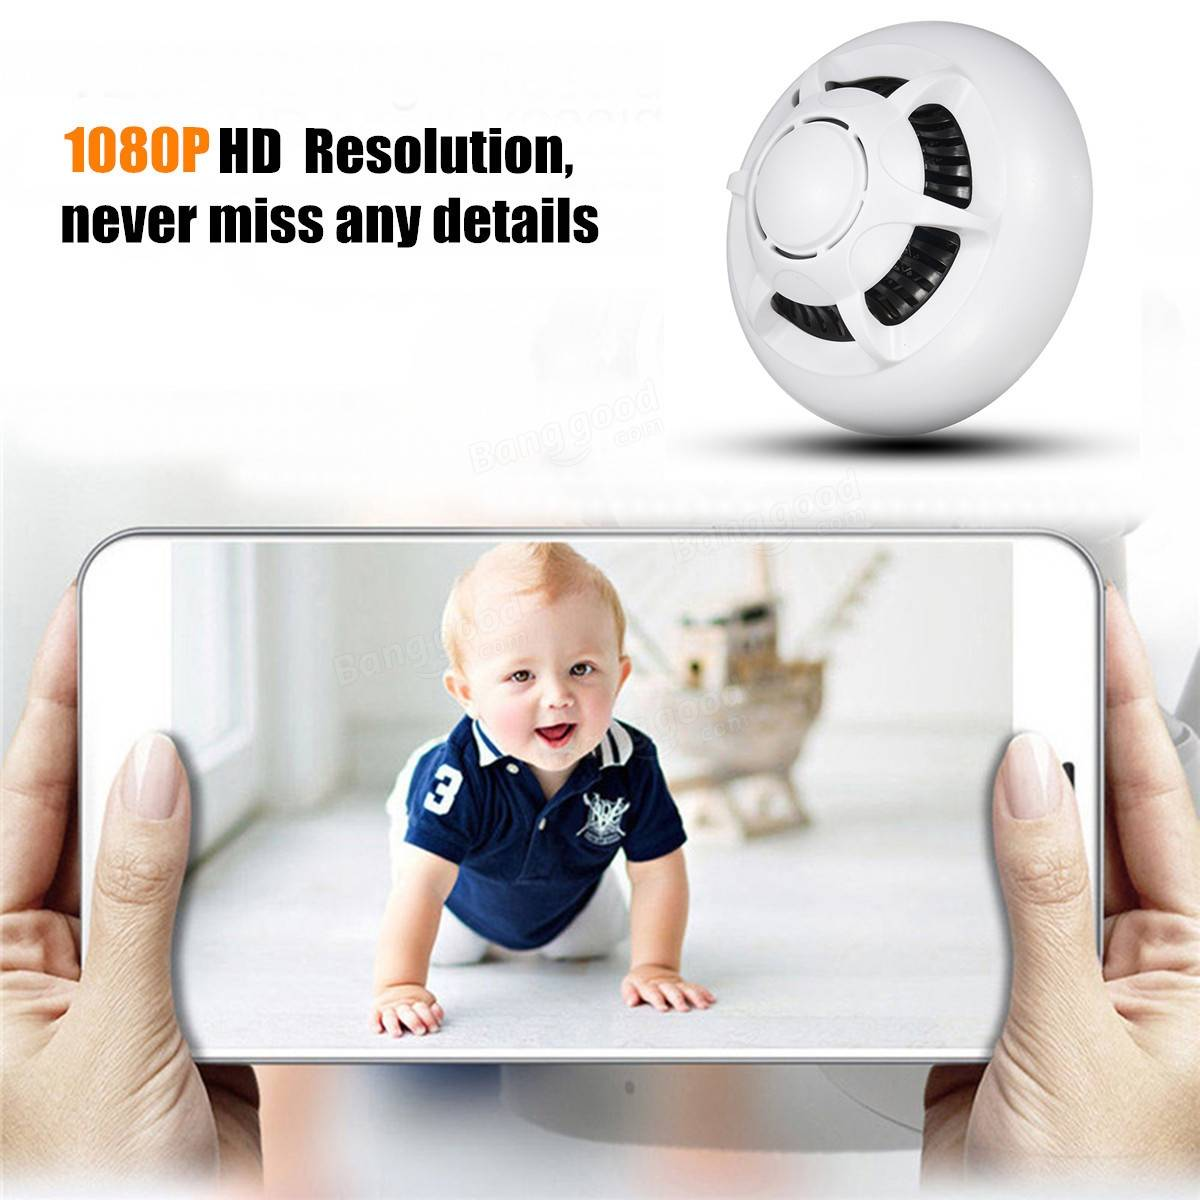 WiFi HD 1080p Camera IP Hidden Security Smoke Detector DVR Mini DVR Nanny Cam